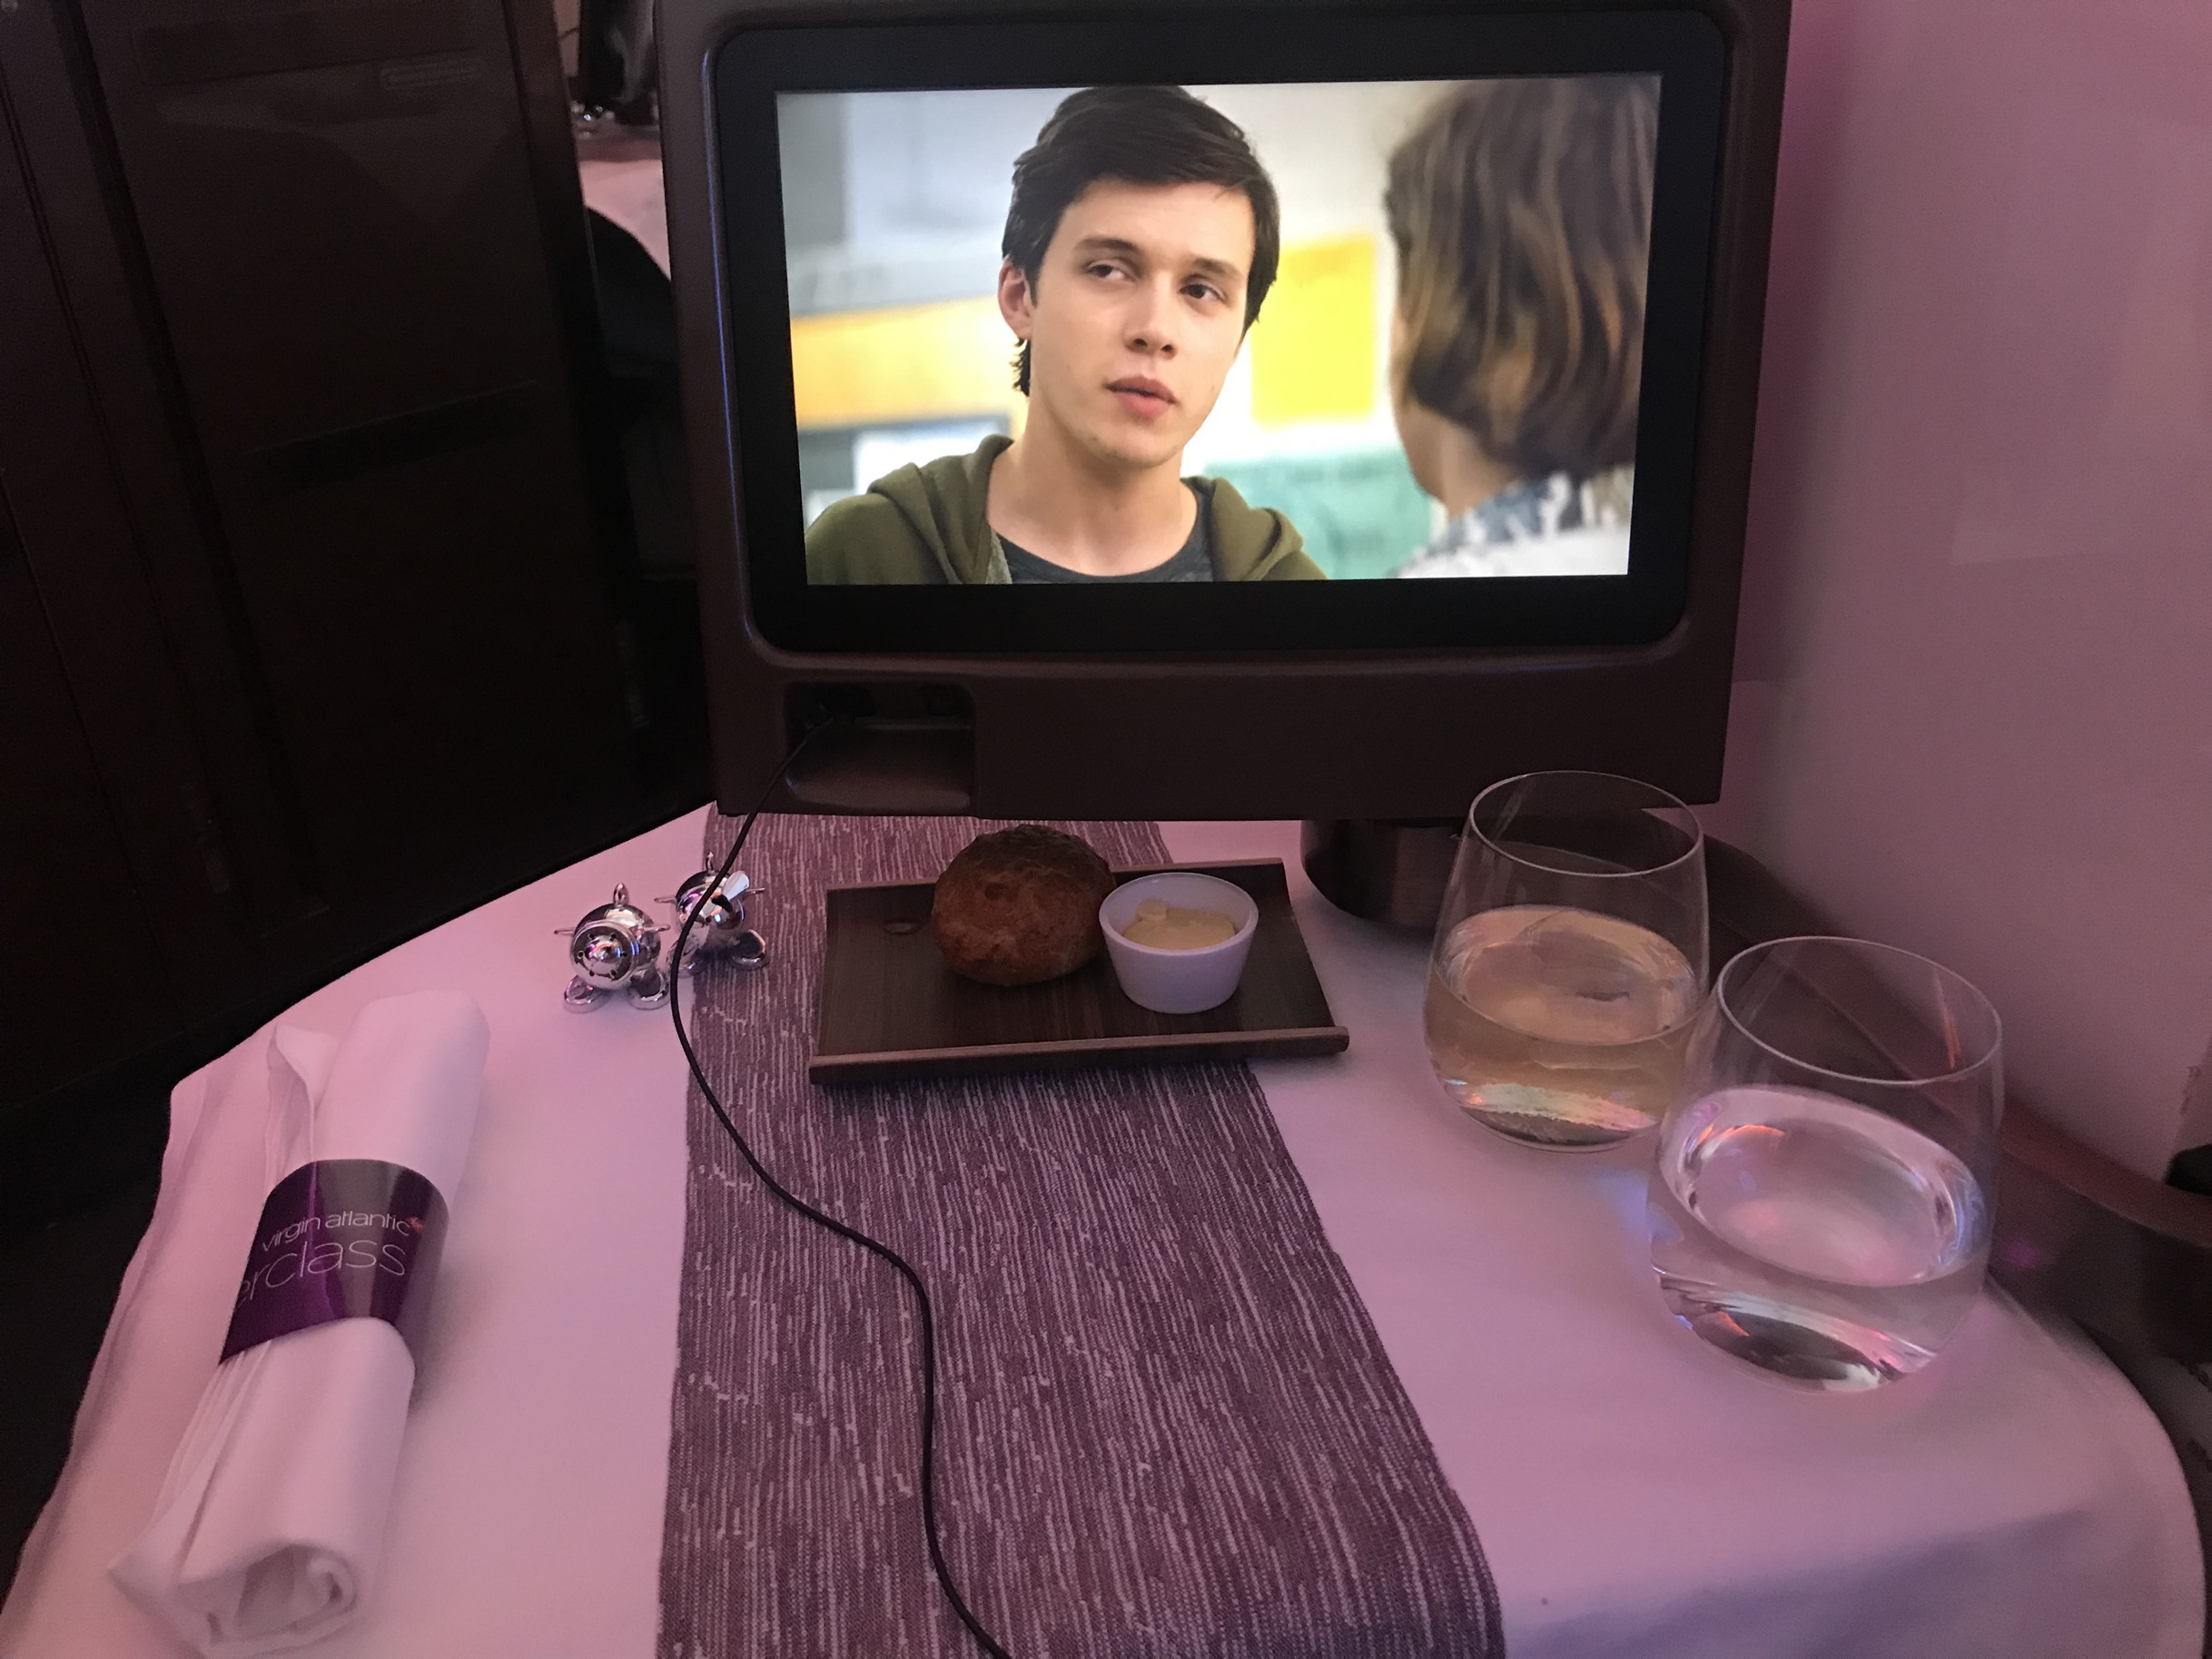 The In-flight Entertainment system